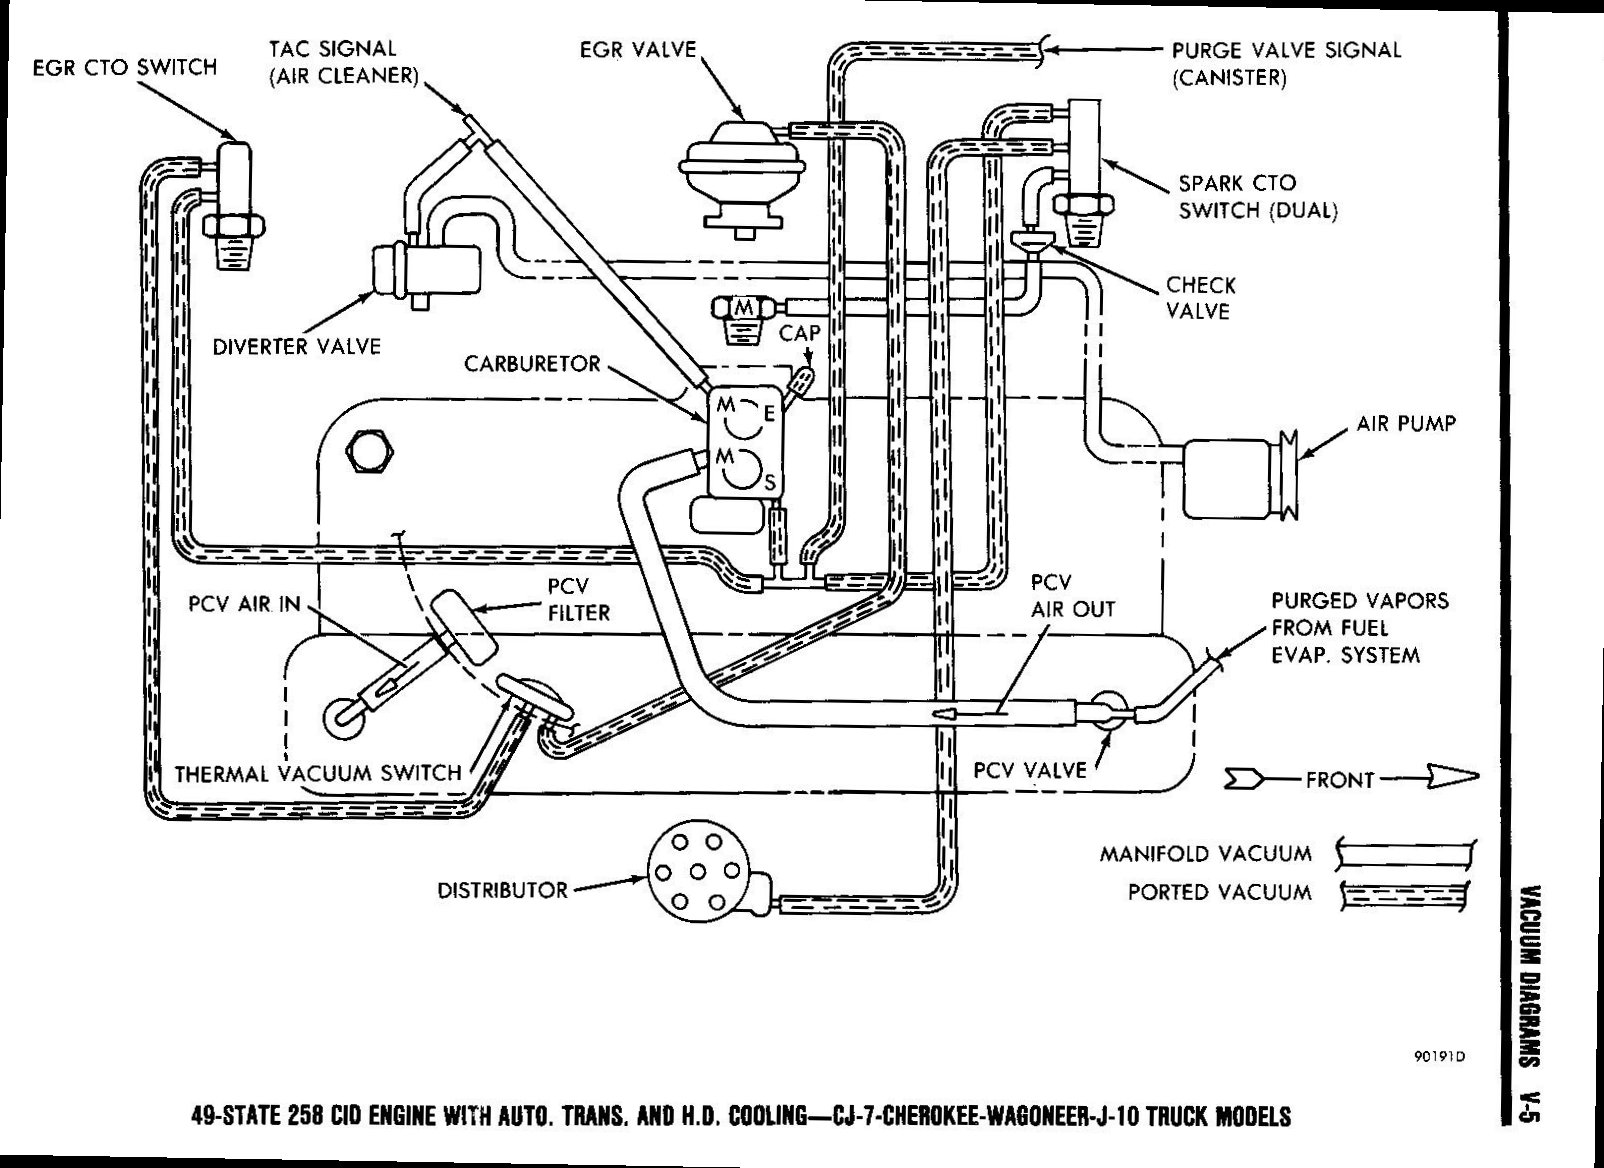 67 Ford Mustang Distributor Wiring Wire Data Schema Diagram Besides Alternator Msd Cj5 258 Vacuum Jeepforum Com 1967 Ignition Switch